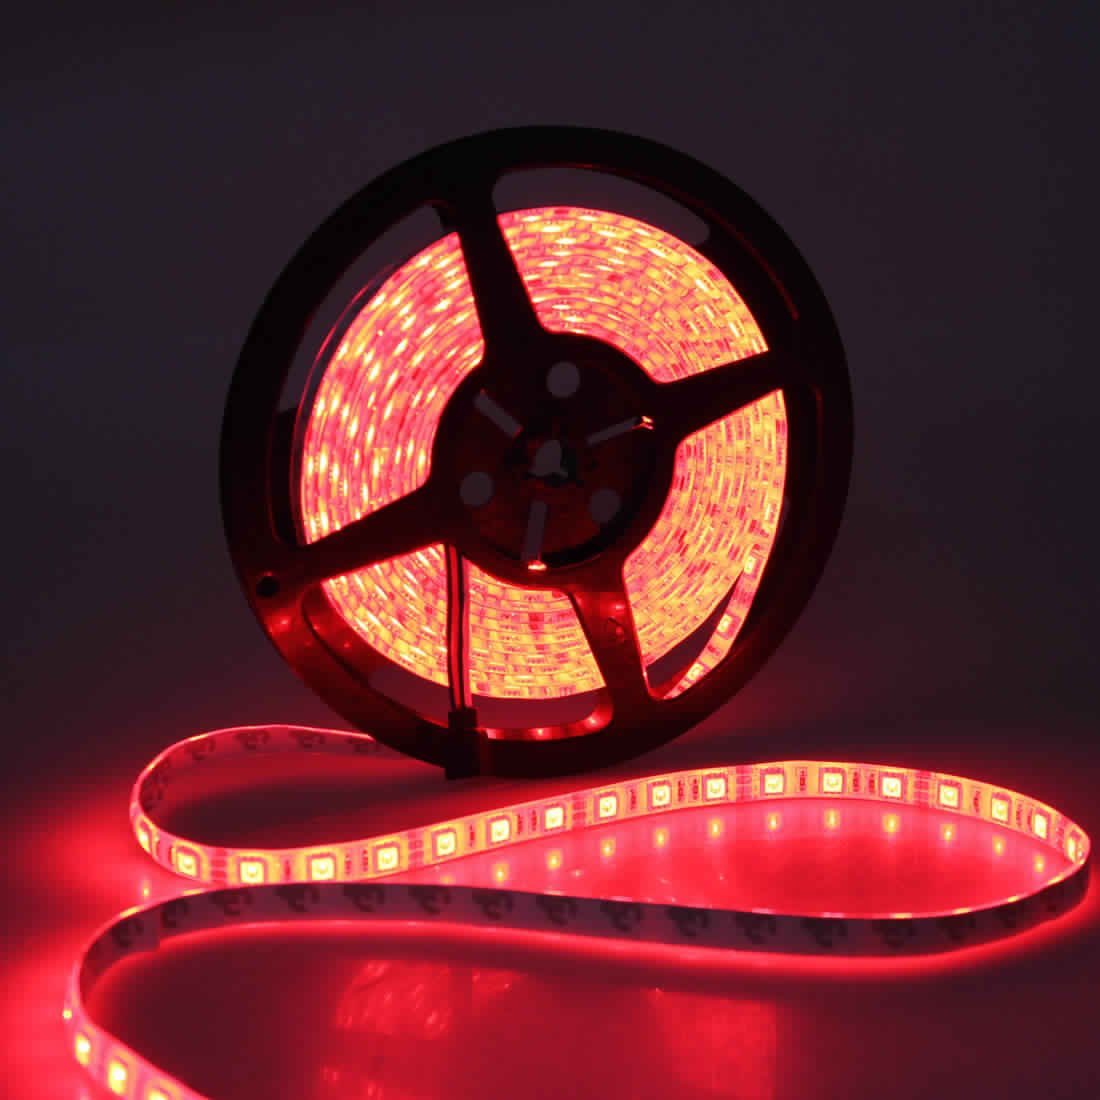 5m 5050 rgb waterproof 300 led strip light 12v dc from mmm999 on tindie. Black Bedroom Furniture Sets. Home Design Ideas